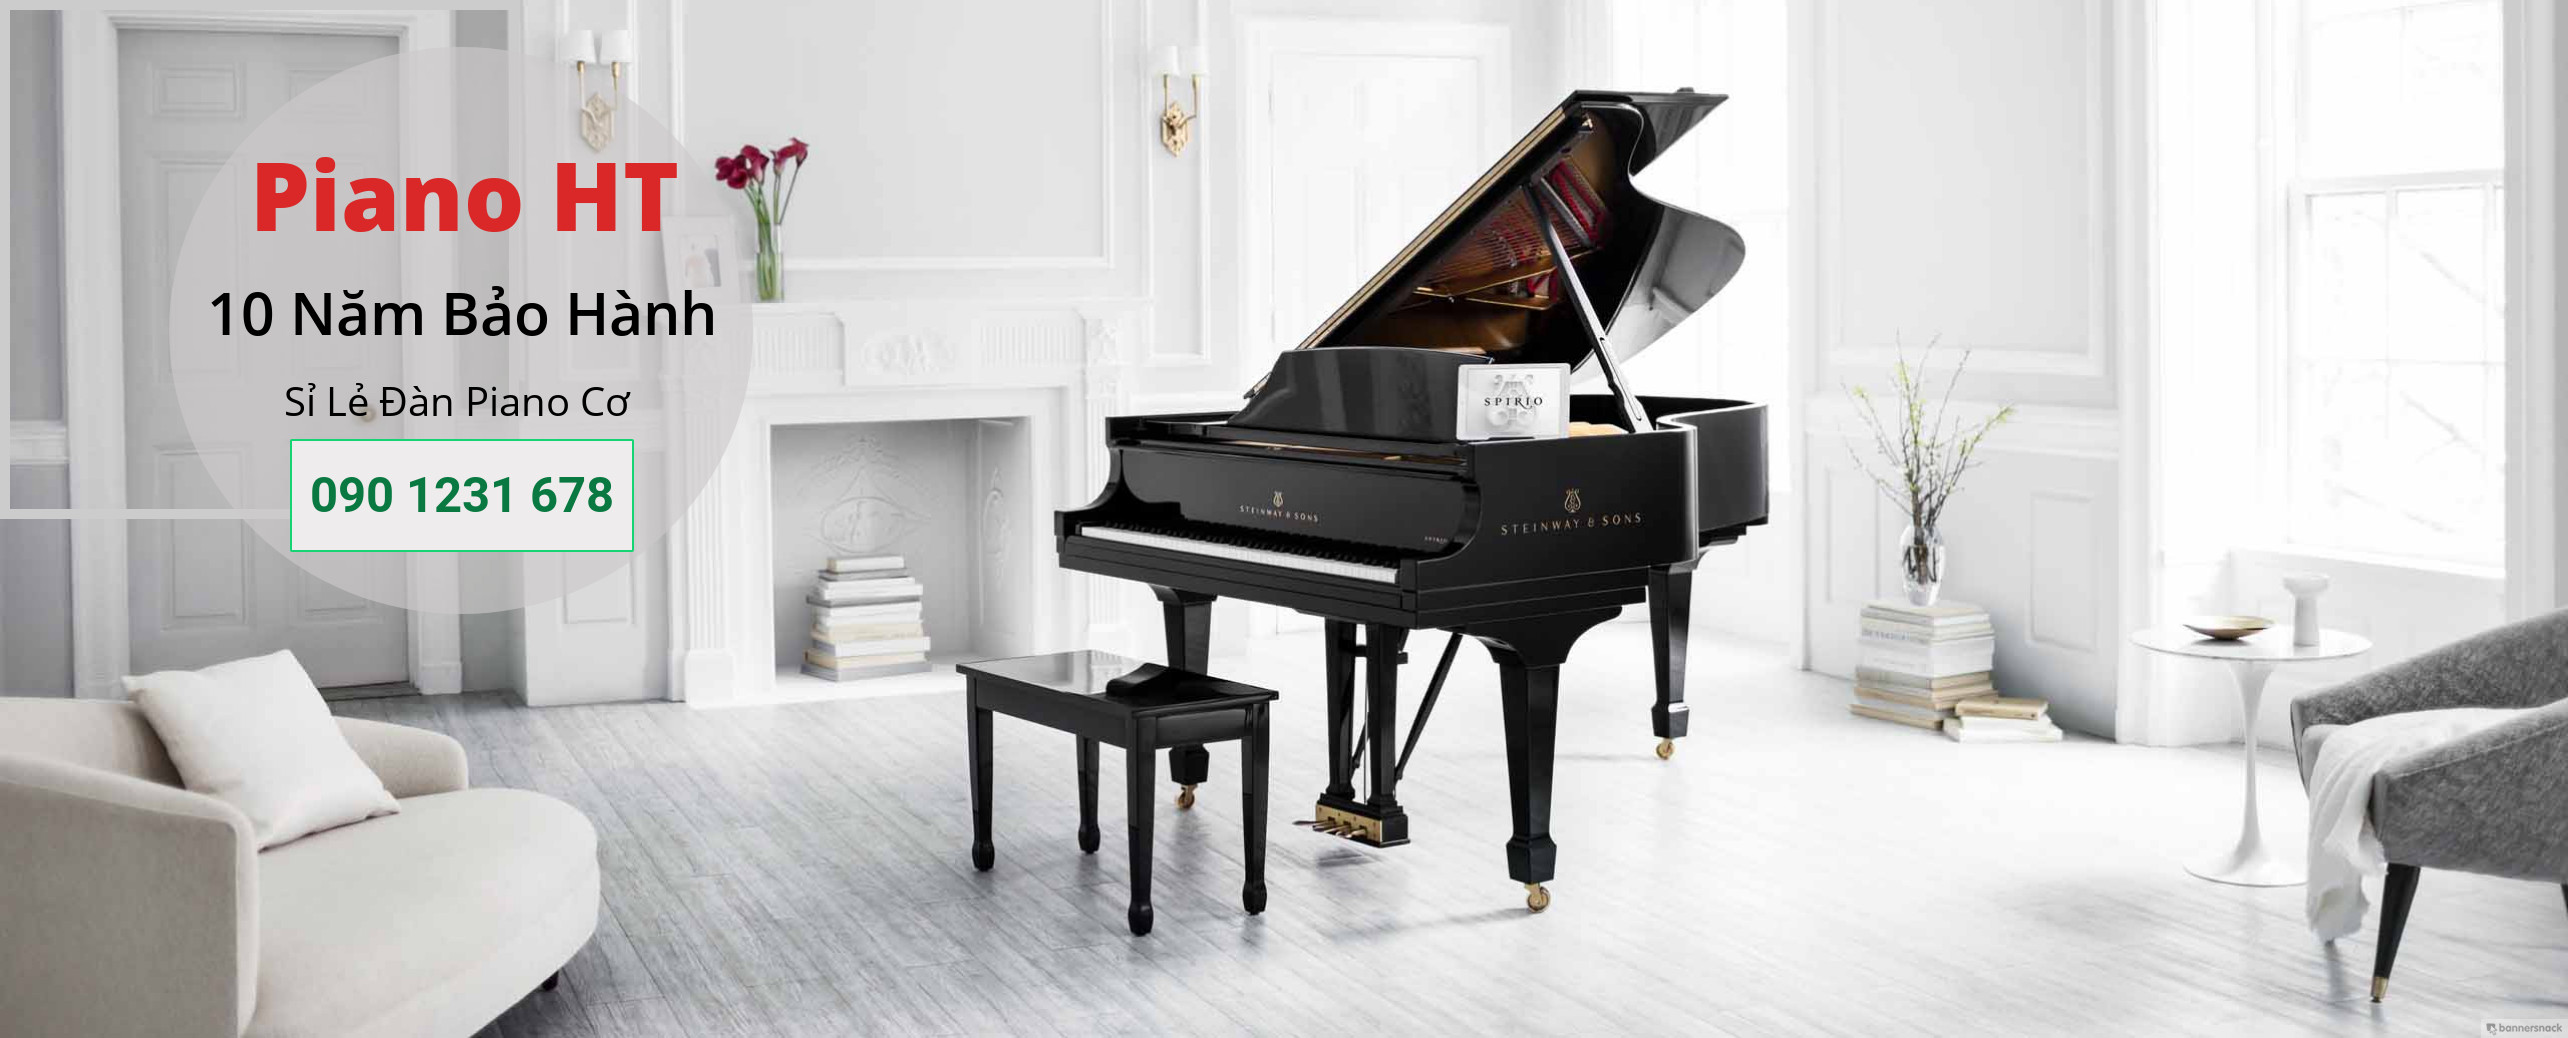 Banner-Piano-HT-Header001